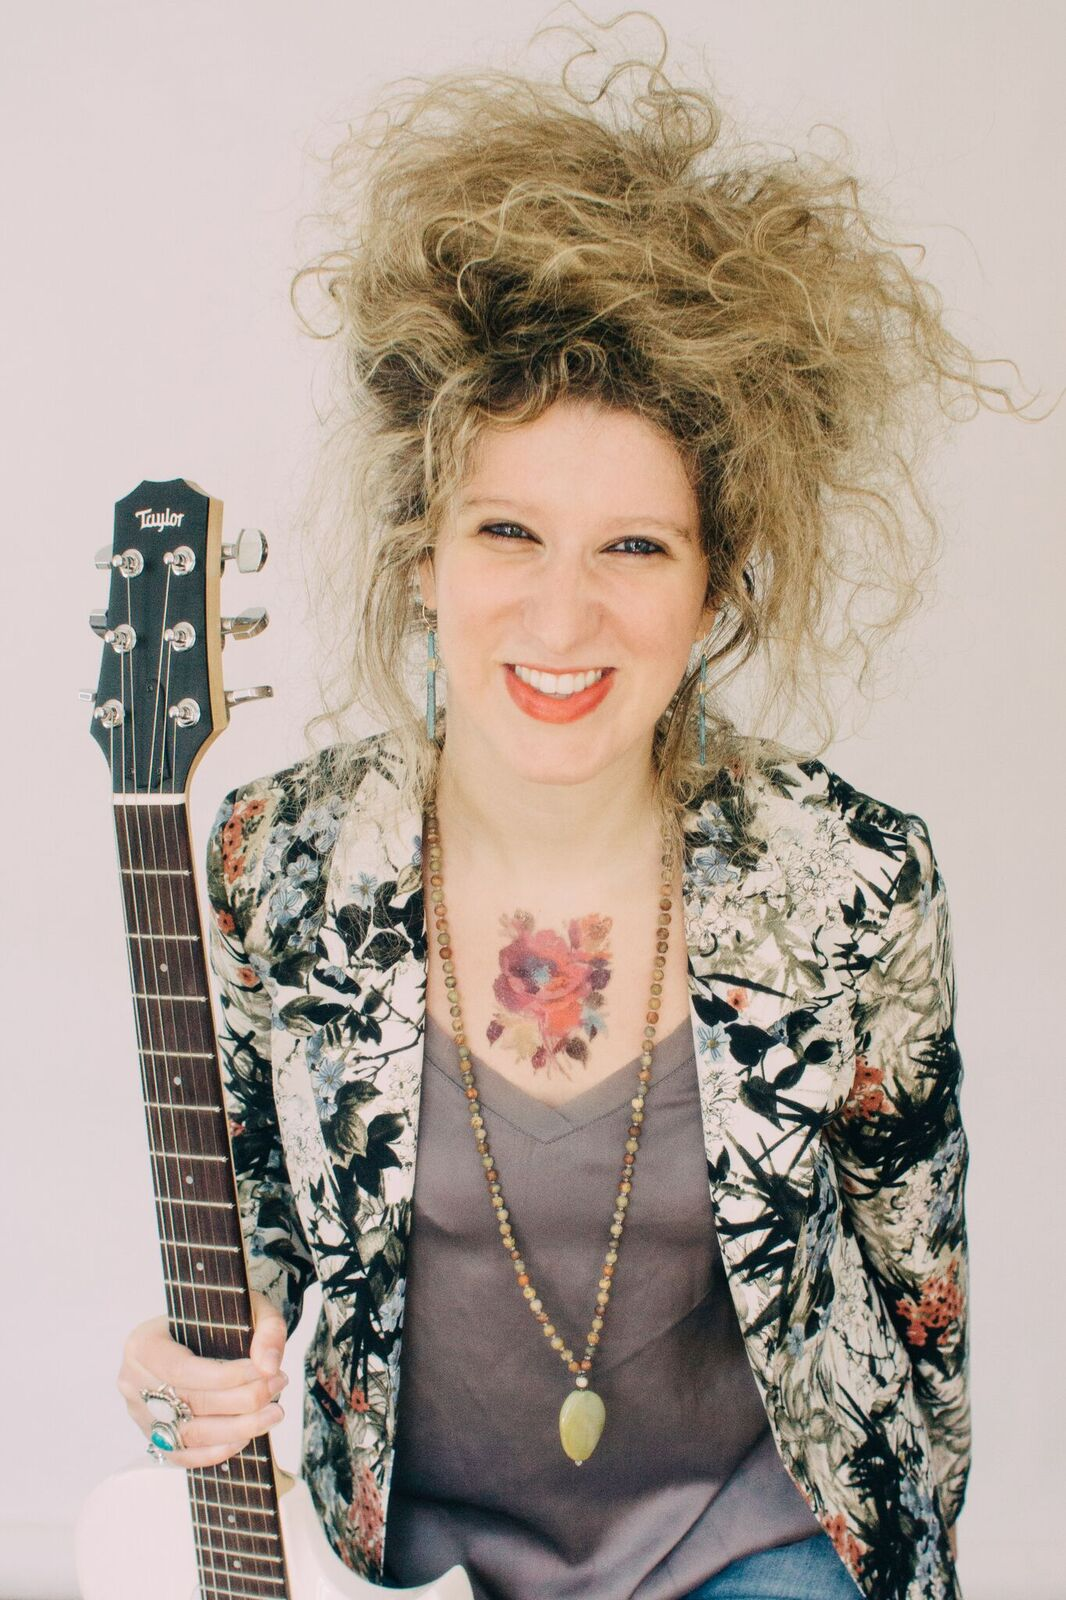 Interview withStephanie Carlin of the Free Spirits Music